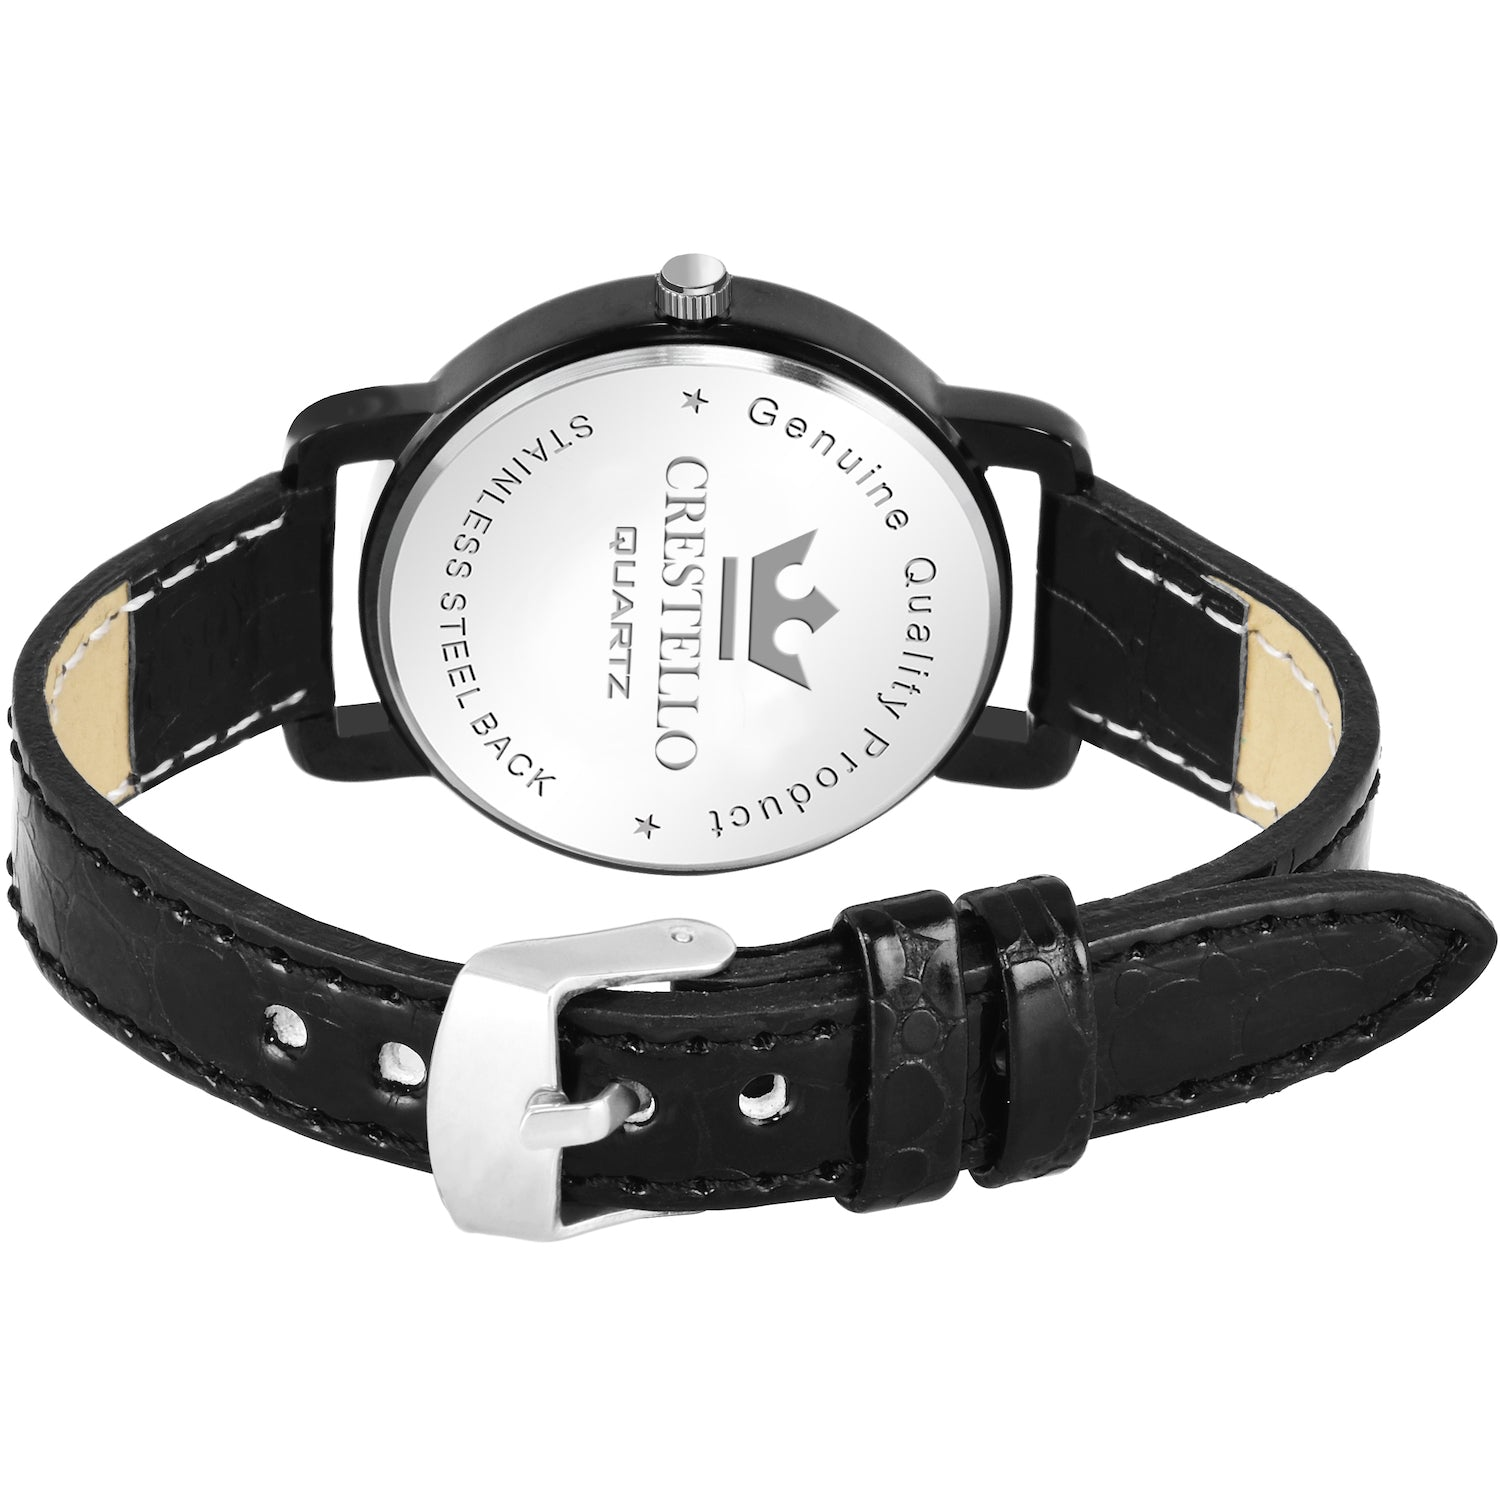 Crestello L107-BLK Wrist Watch for Women